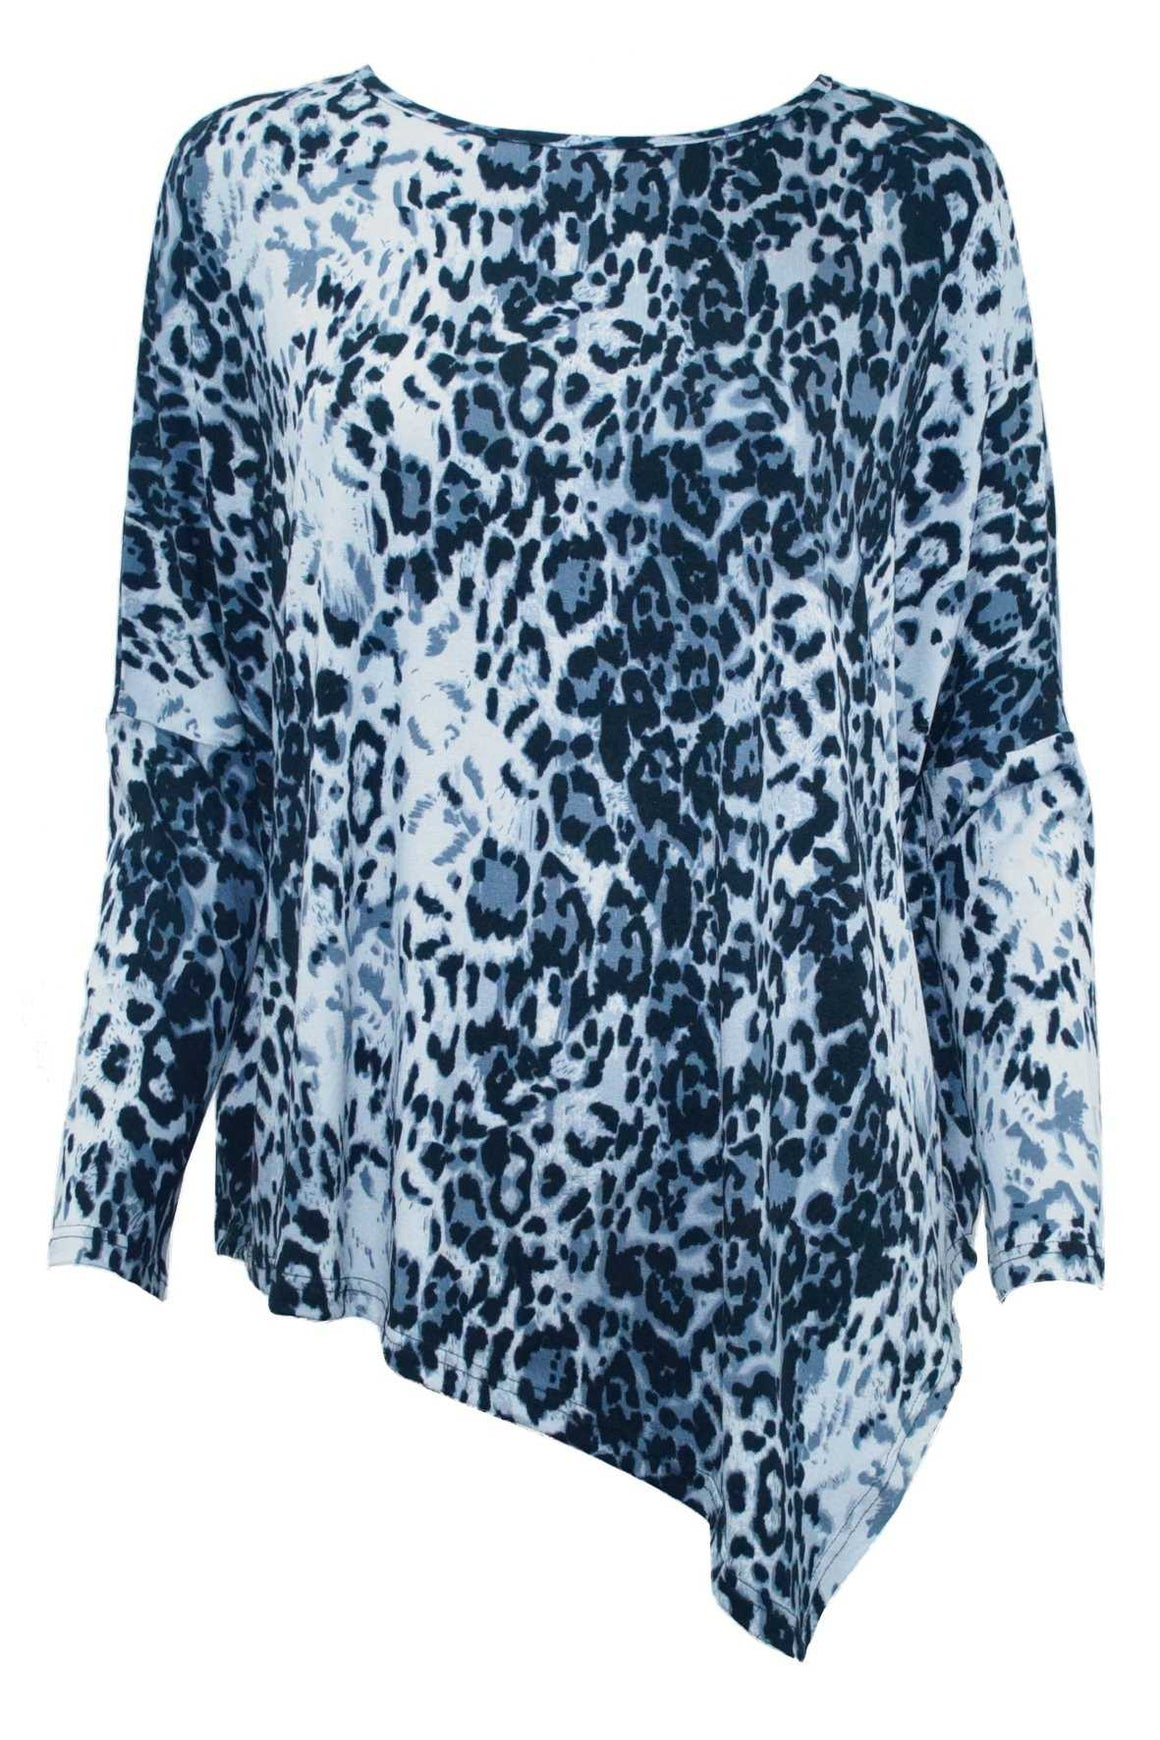 ANIMAL PRINT ASYMMETRICAL TOP